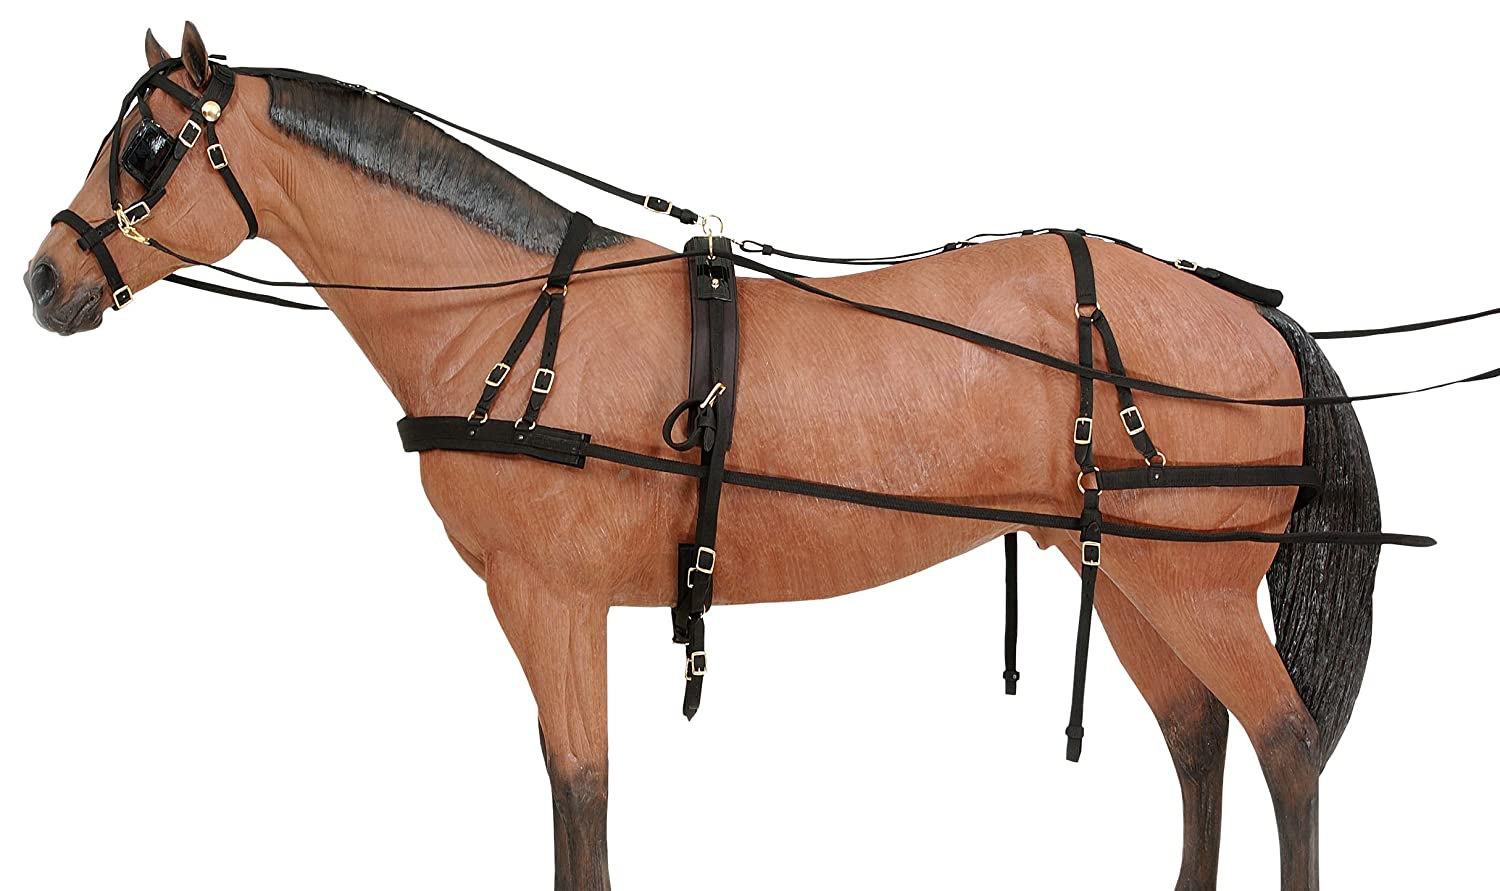 Amazon.com : Tough 1 Deluxe Nylon Driving Harness : Horse Driving Equipment  : Sports & Outdoors